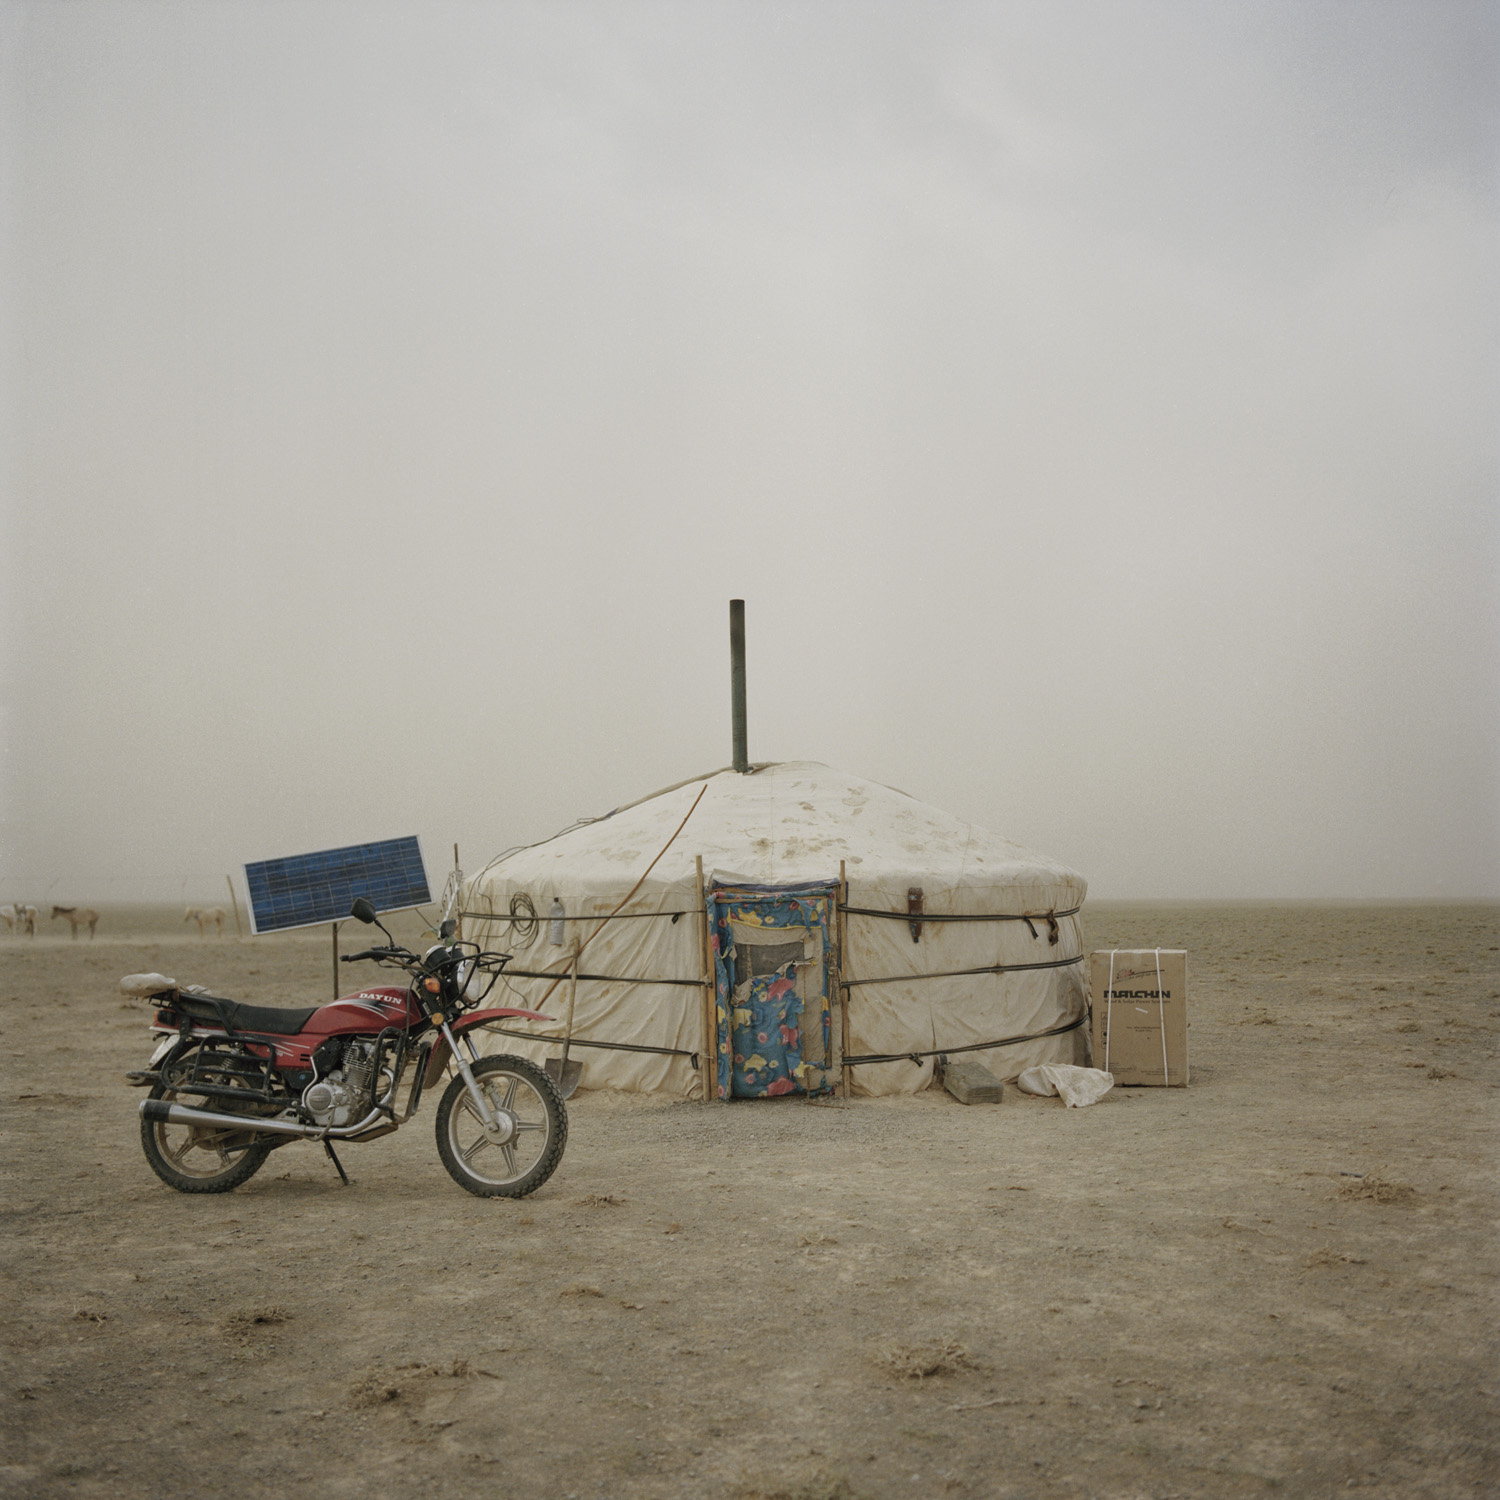 The ger where the nomad family lives. Mongolia, Gobi, Omongovi, 2012.